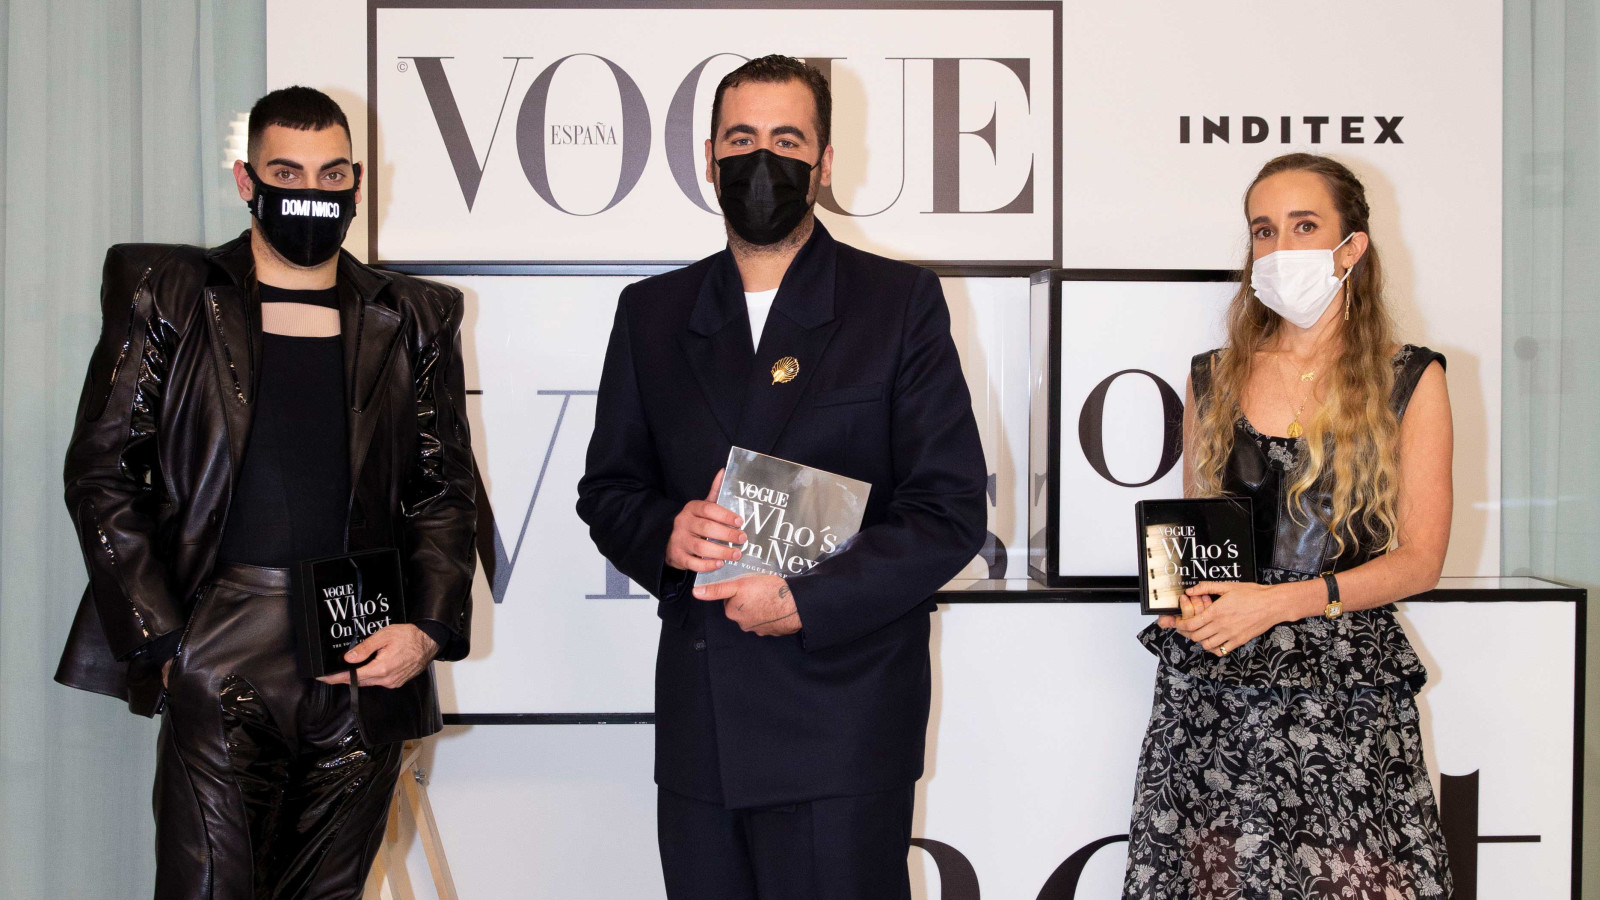 WON 09---Miguel-Iban-Garcia-Lomas---Spain---Vogue-Who's-On-Next-small